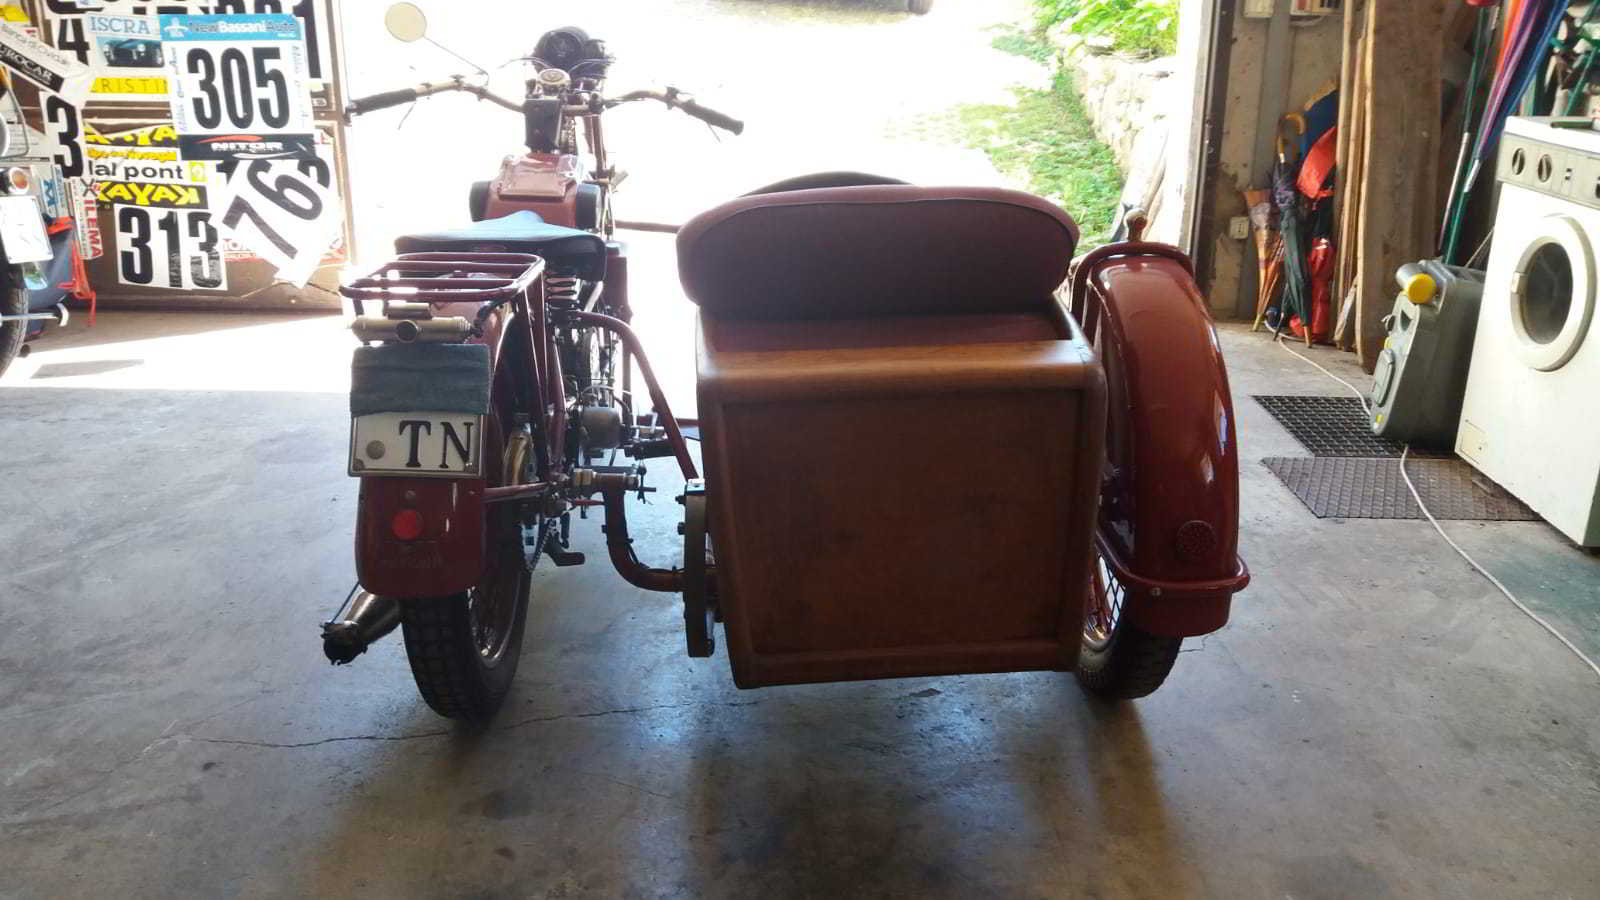 moto guzzi sport 14 sidecar 1929 For Sale (picture 1 of 4)